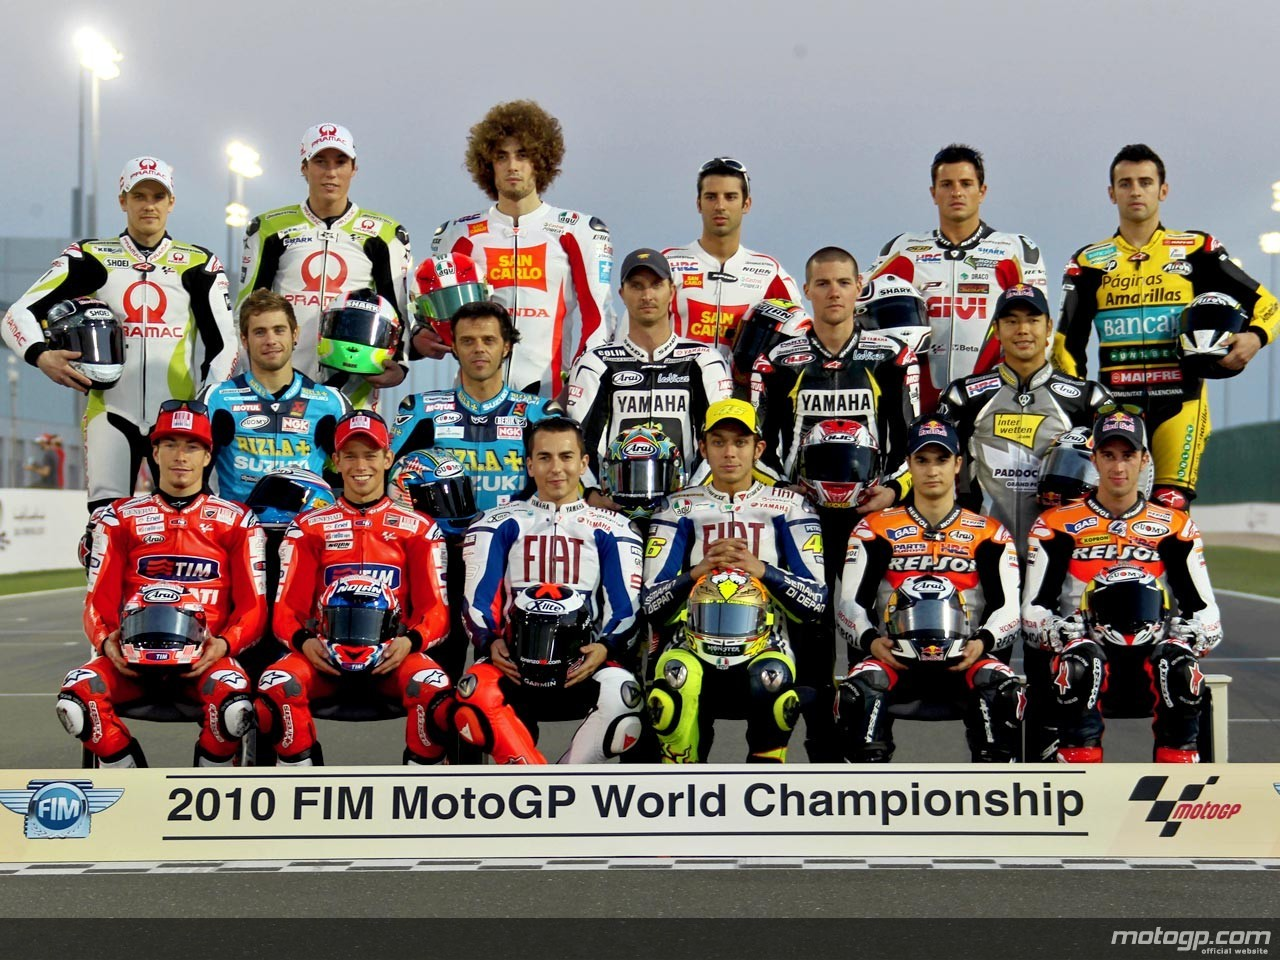 motogp teams Photo